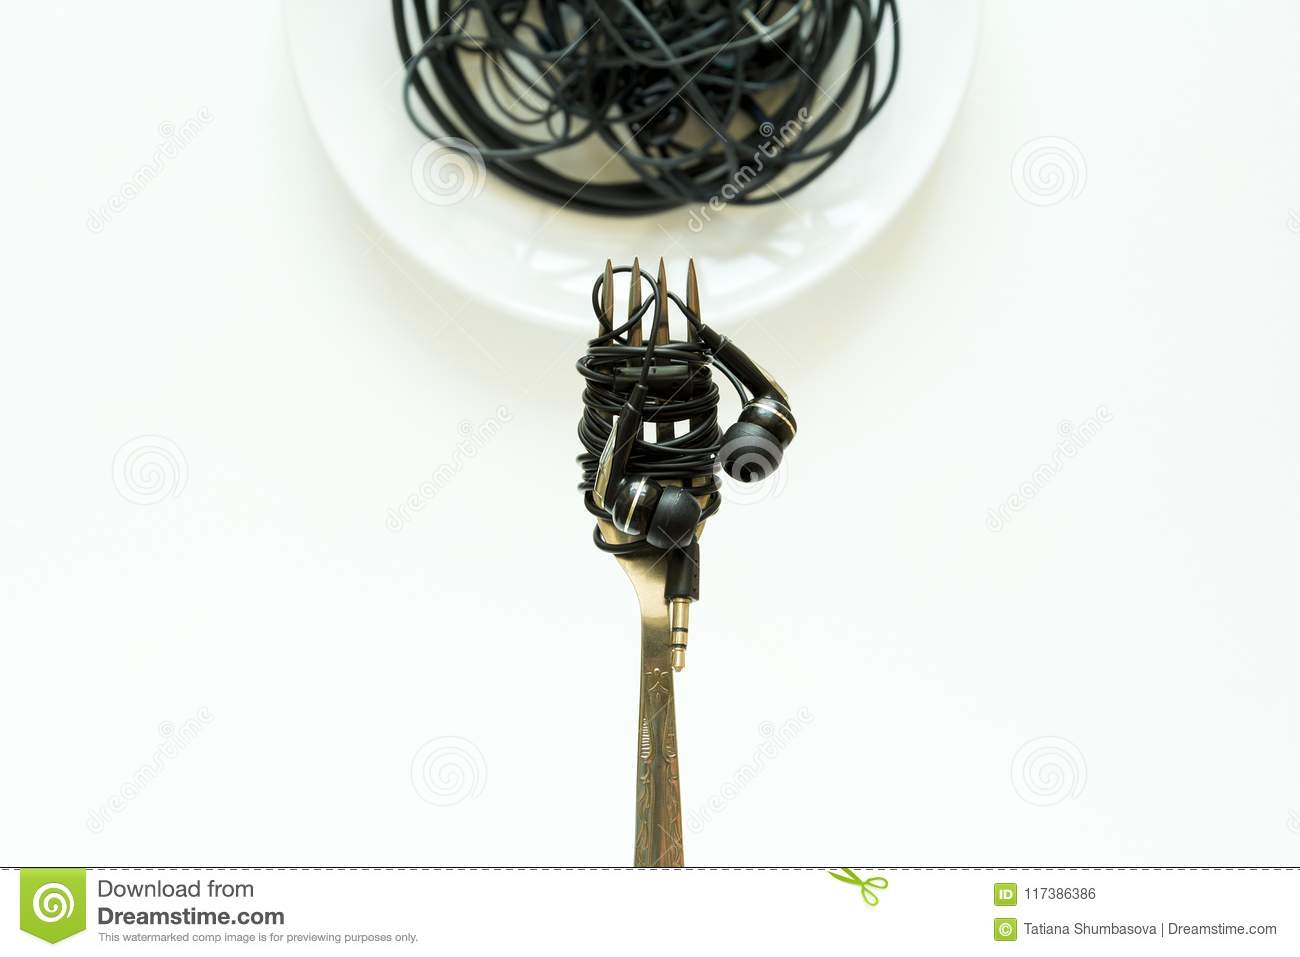 food technology  synthetic food concept  fork with electric wire spaghetti  from phones  food